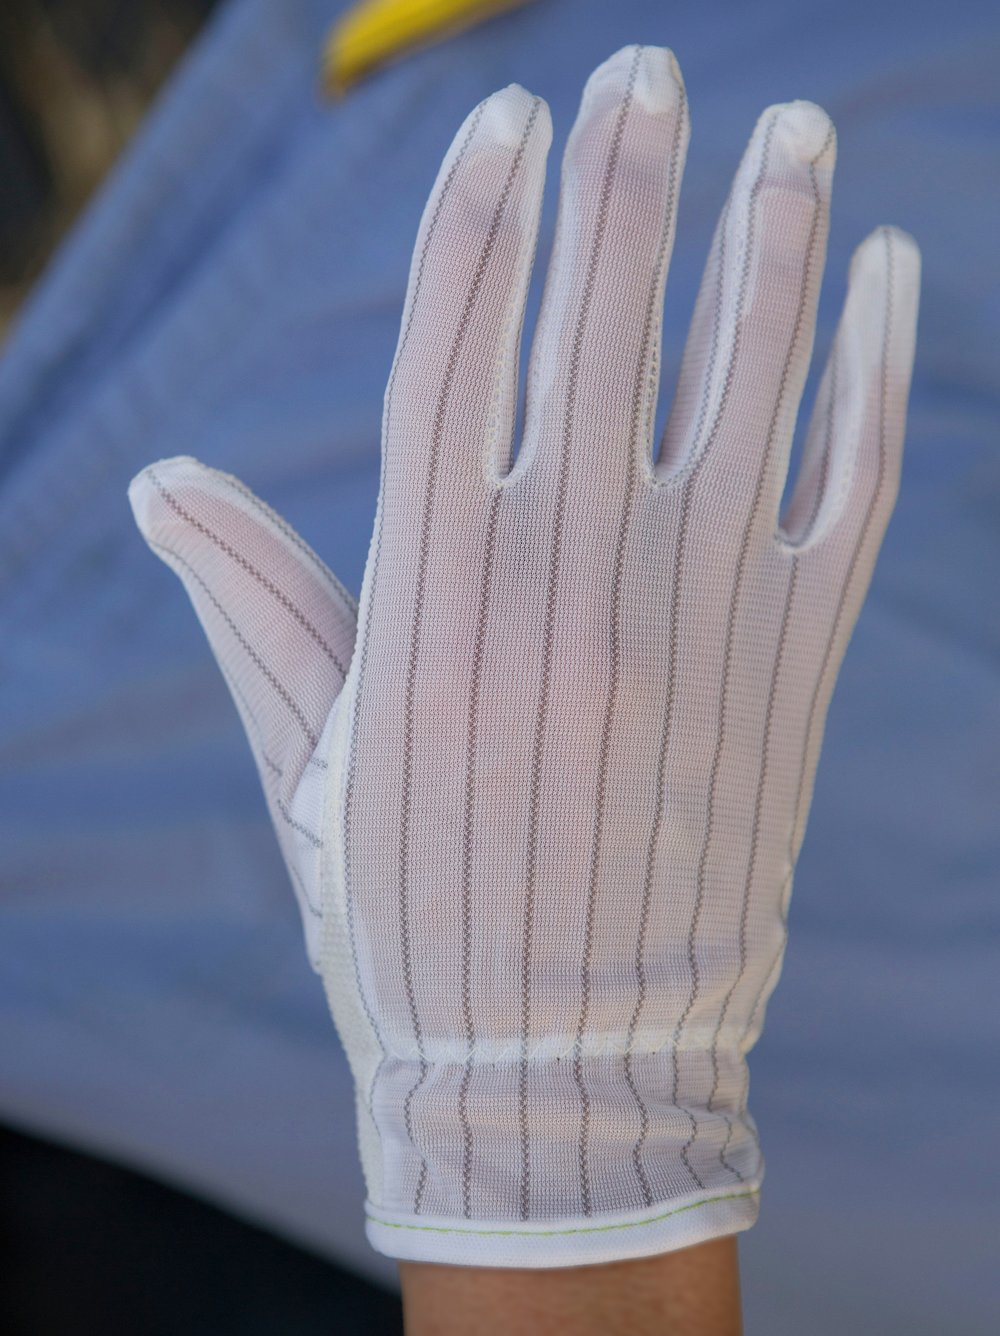 Lab gloves: lint-free, static-free (top view)